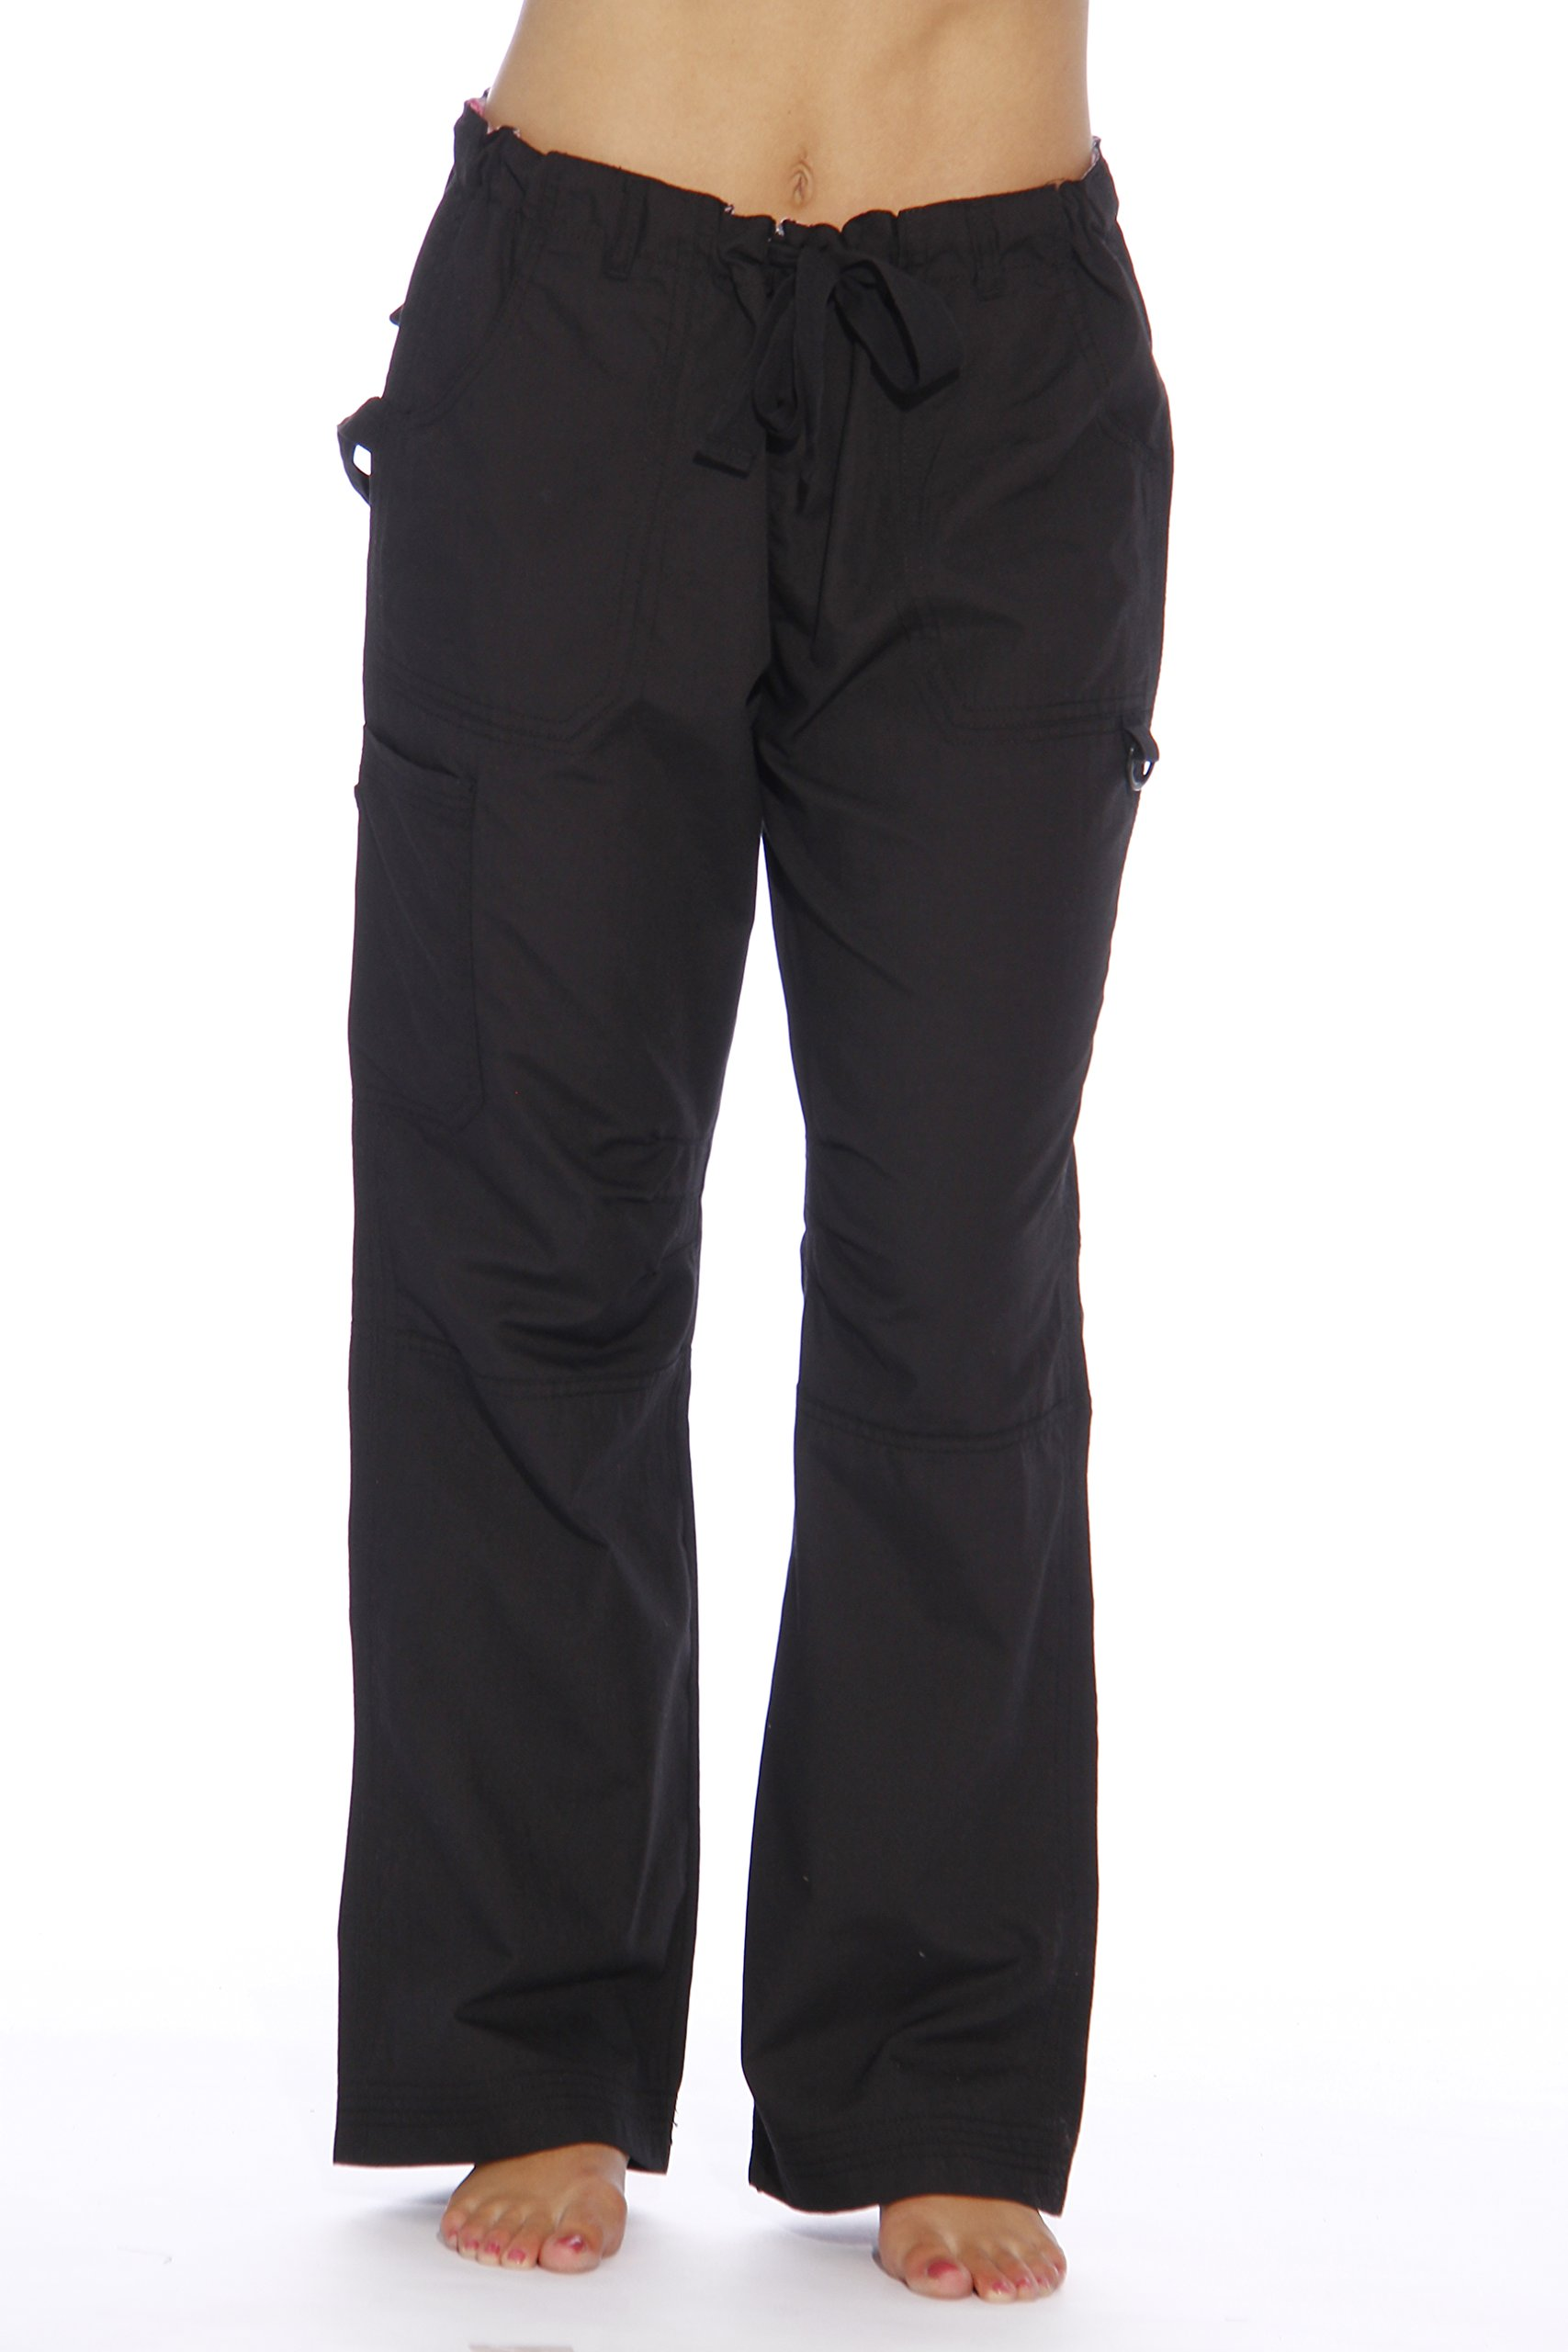 24000PBLK-S Just Love Women's Utility Scrub Pants / Scrubs, Black Utility, Small